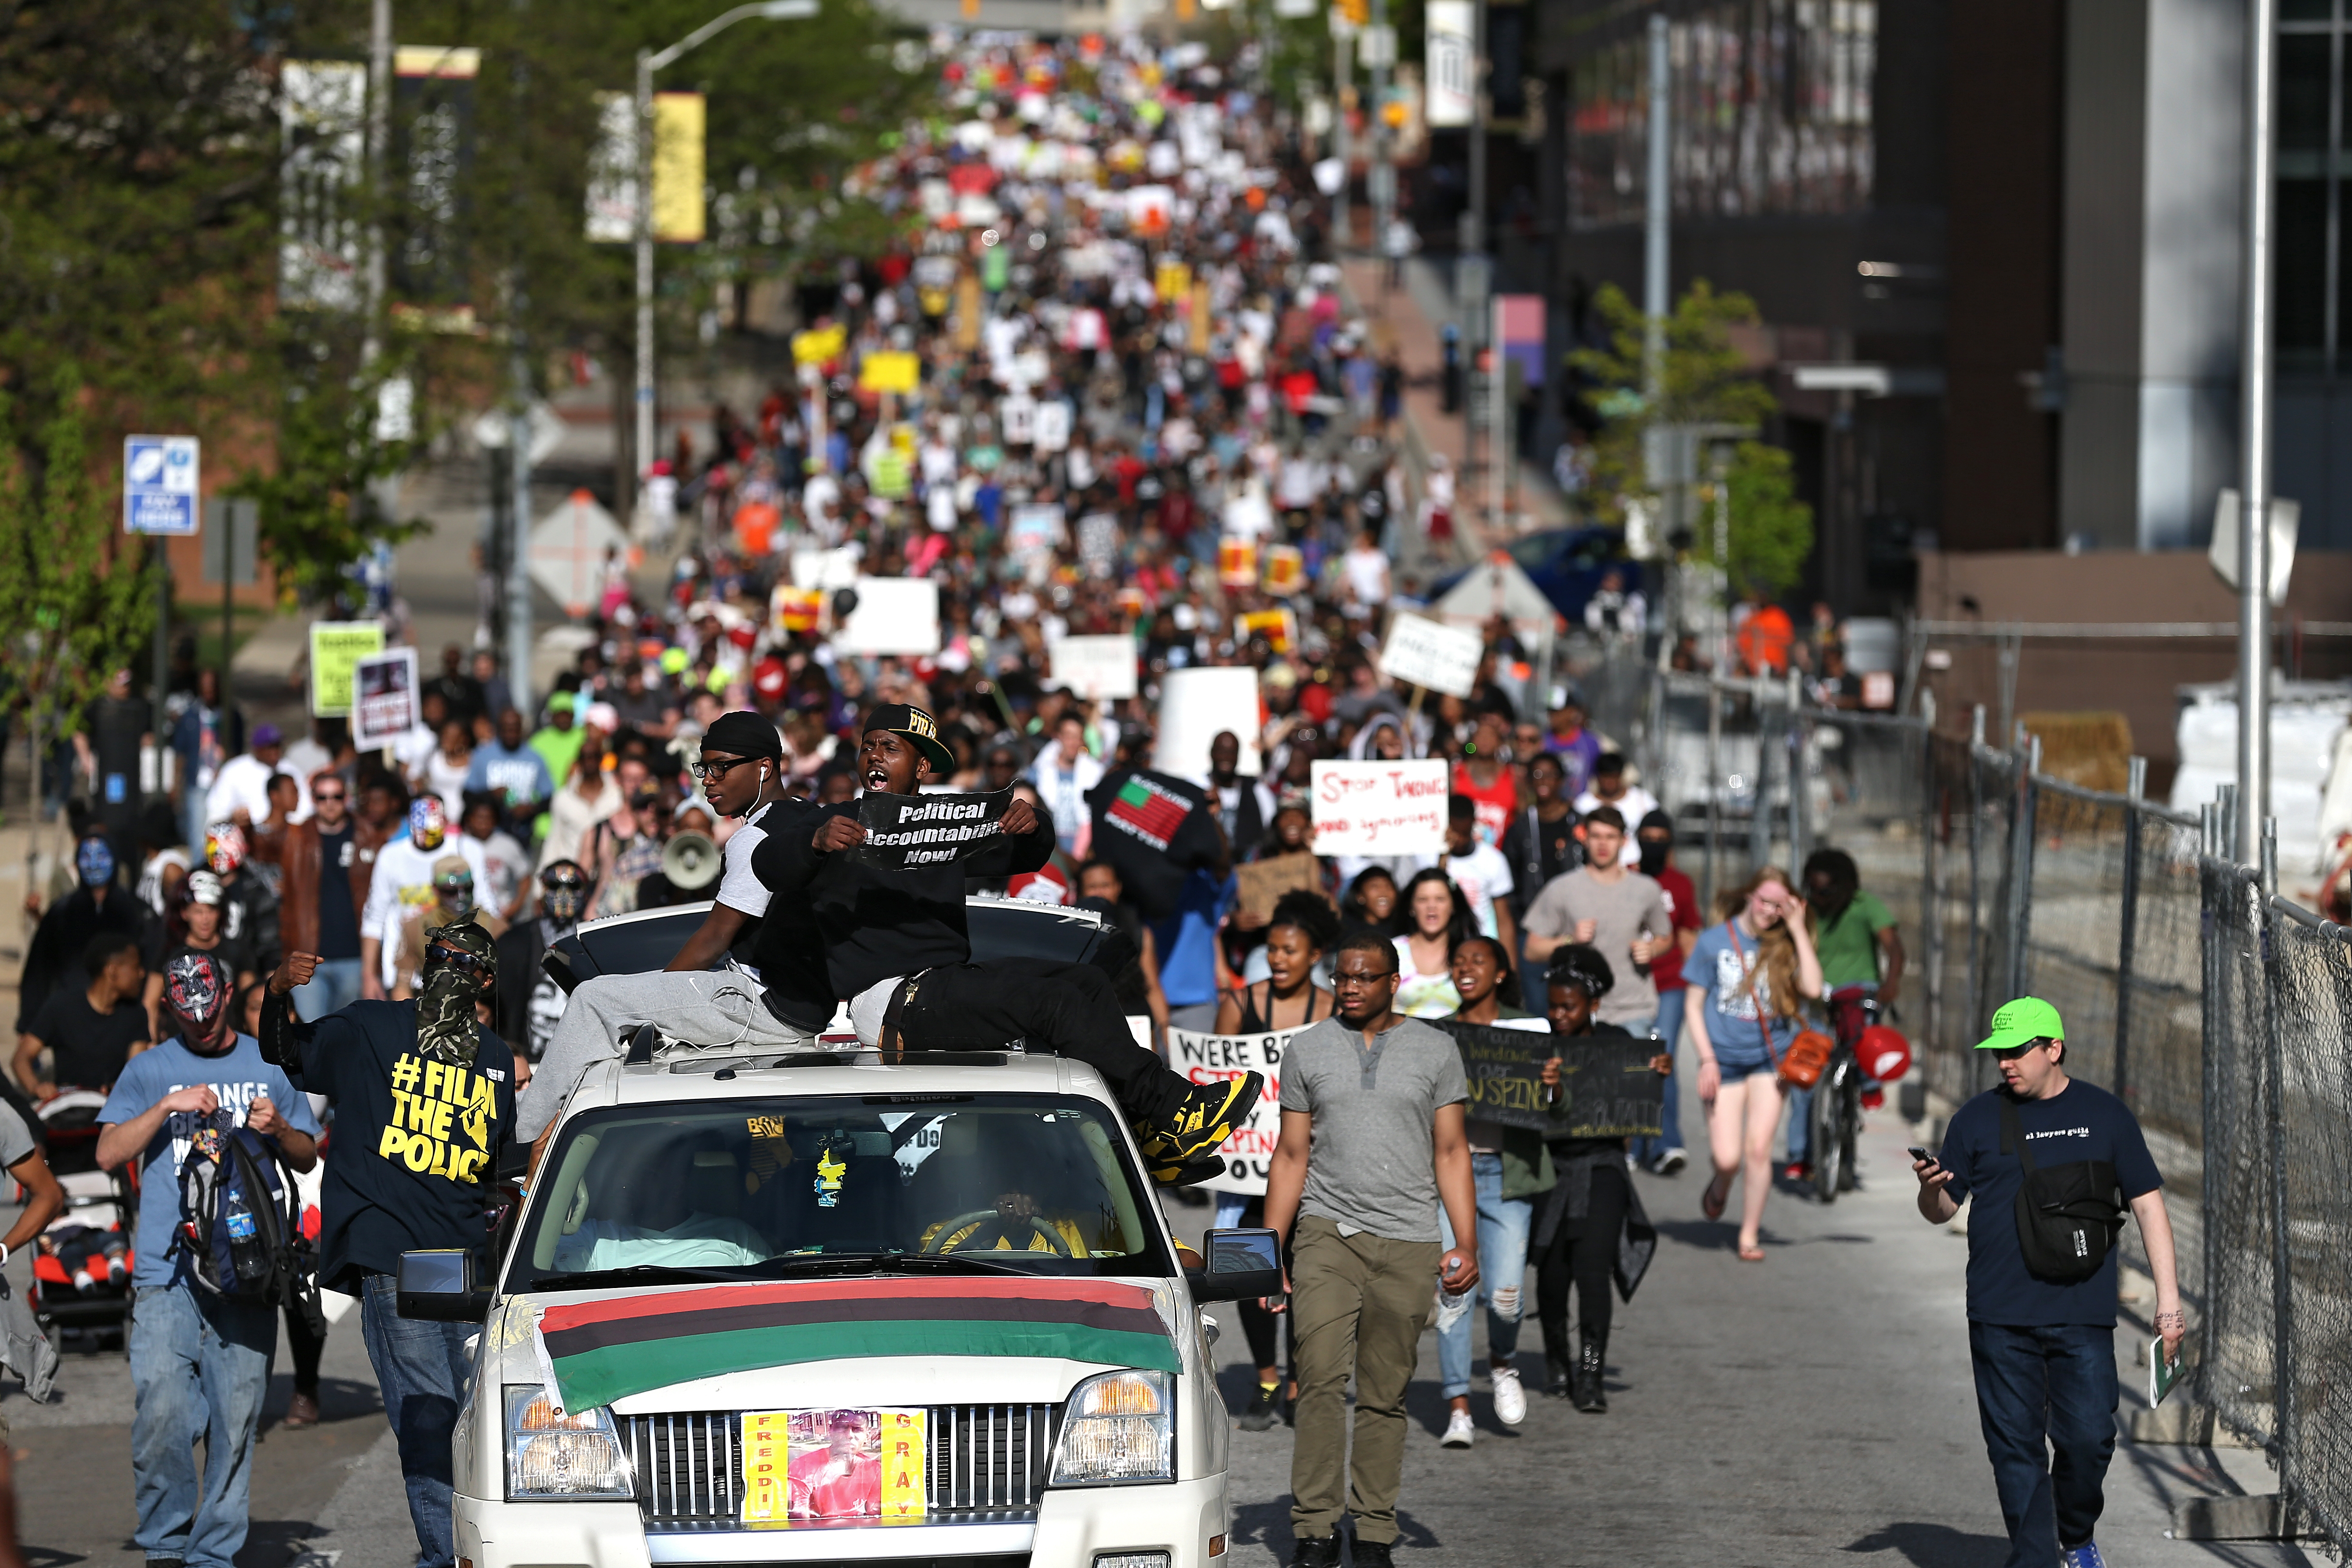 Protesters in Baltimore march on the street from City Hall on Saturday, a day after Baltimore authorities released a report on the death of Freddie Gray.